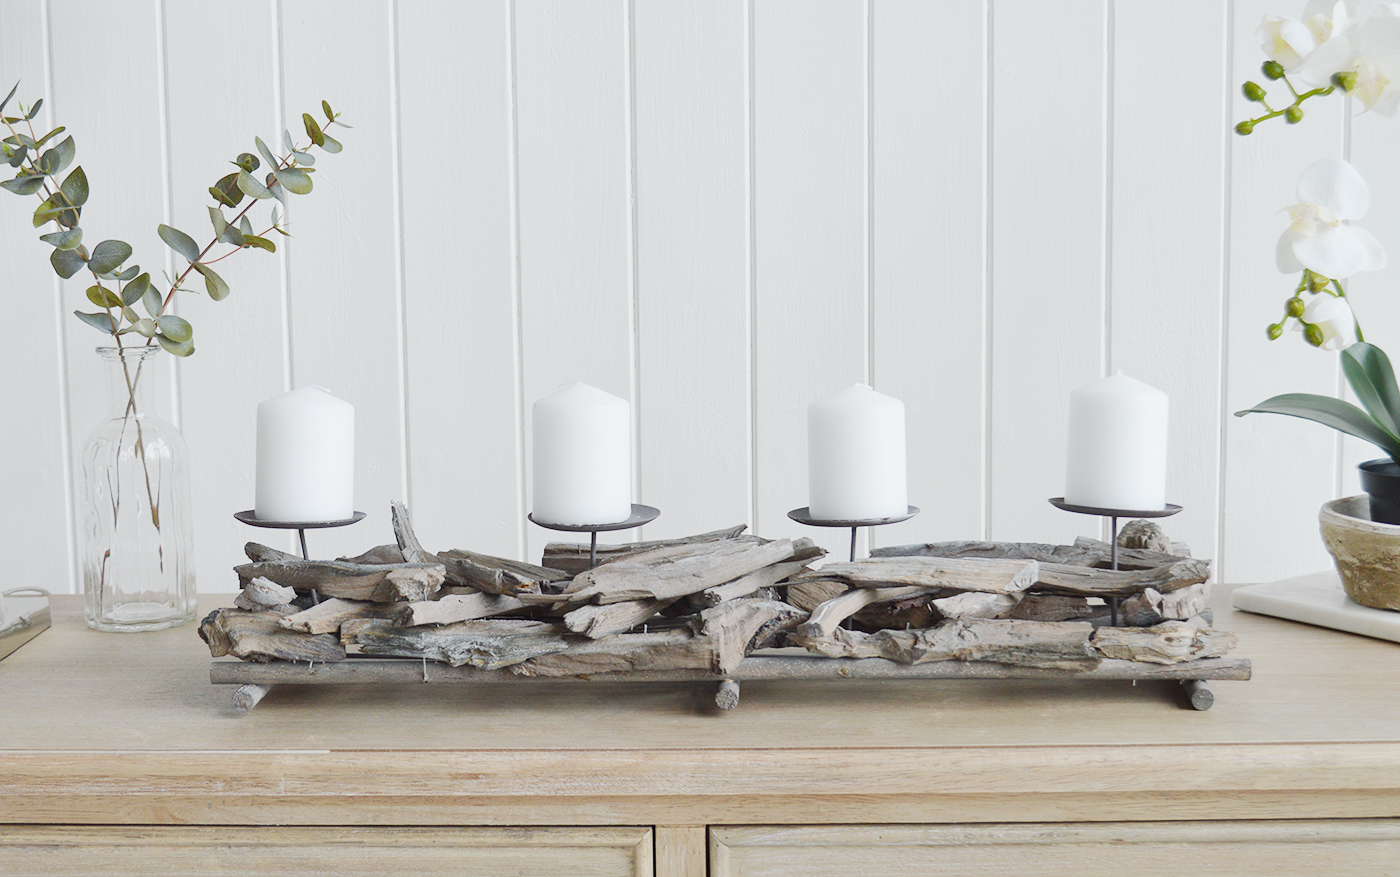 Driftwood Candle Holder The White Lighthouse New England Coastal Farmhouse And Country Home Furniture And Decor Accesories